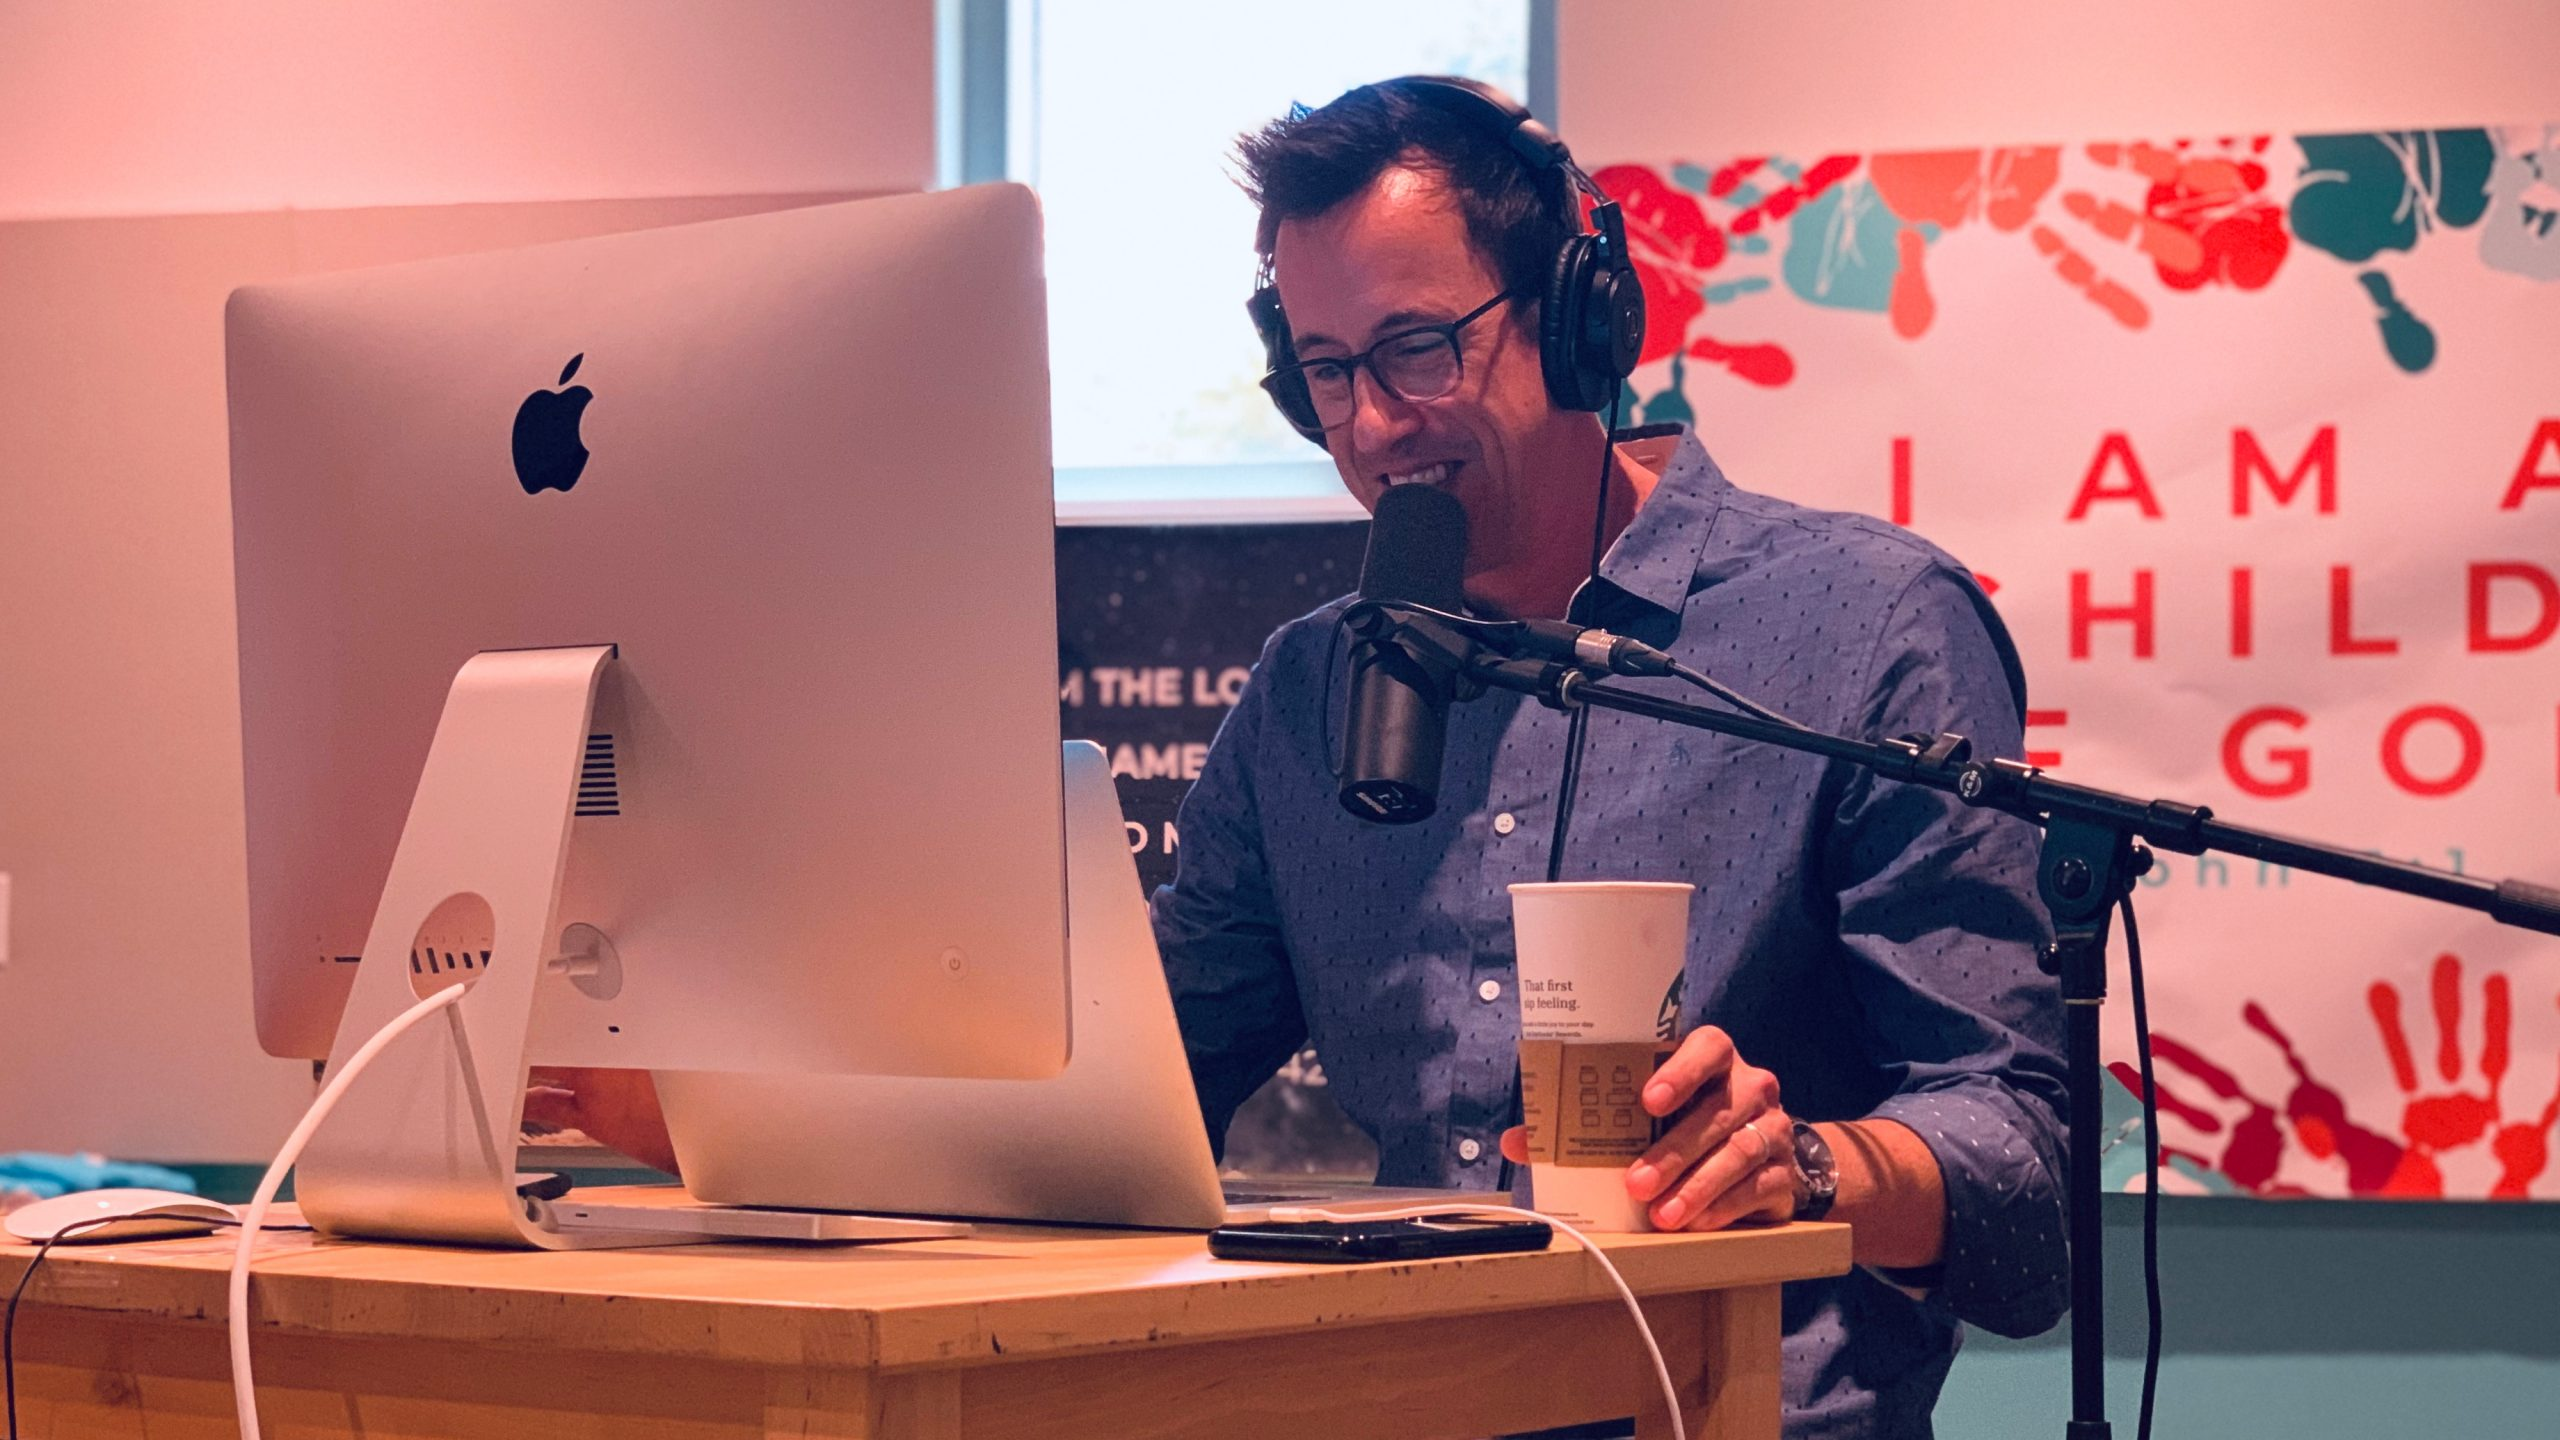 Eric Huffman cold-calls listeners from all over the world to find out how they're coping with the coronavirus crisis. Hear their stories of pain and fear, joy and resilience.